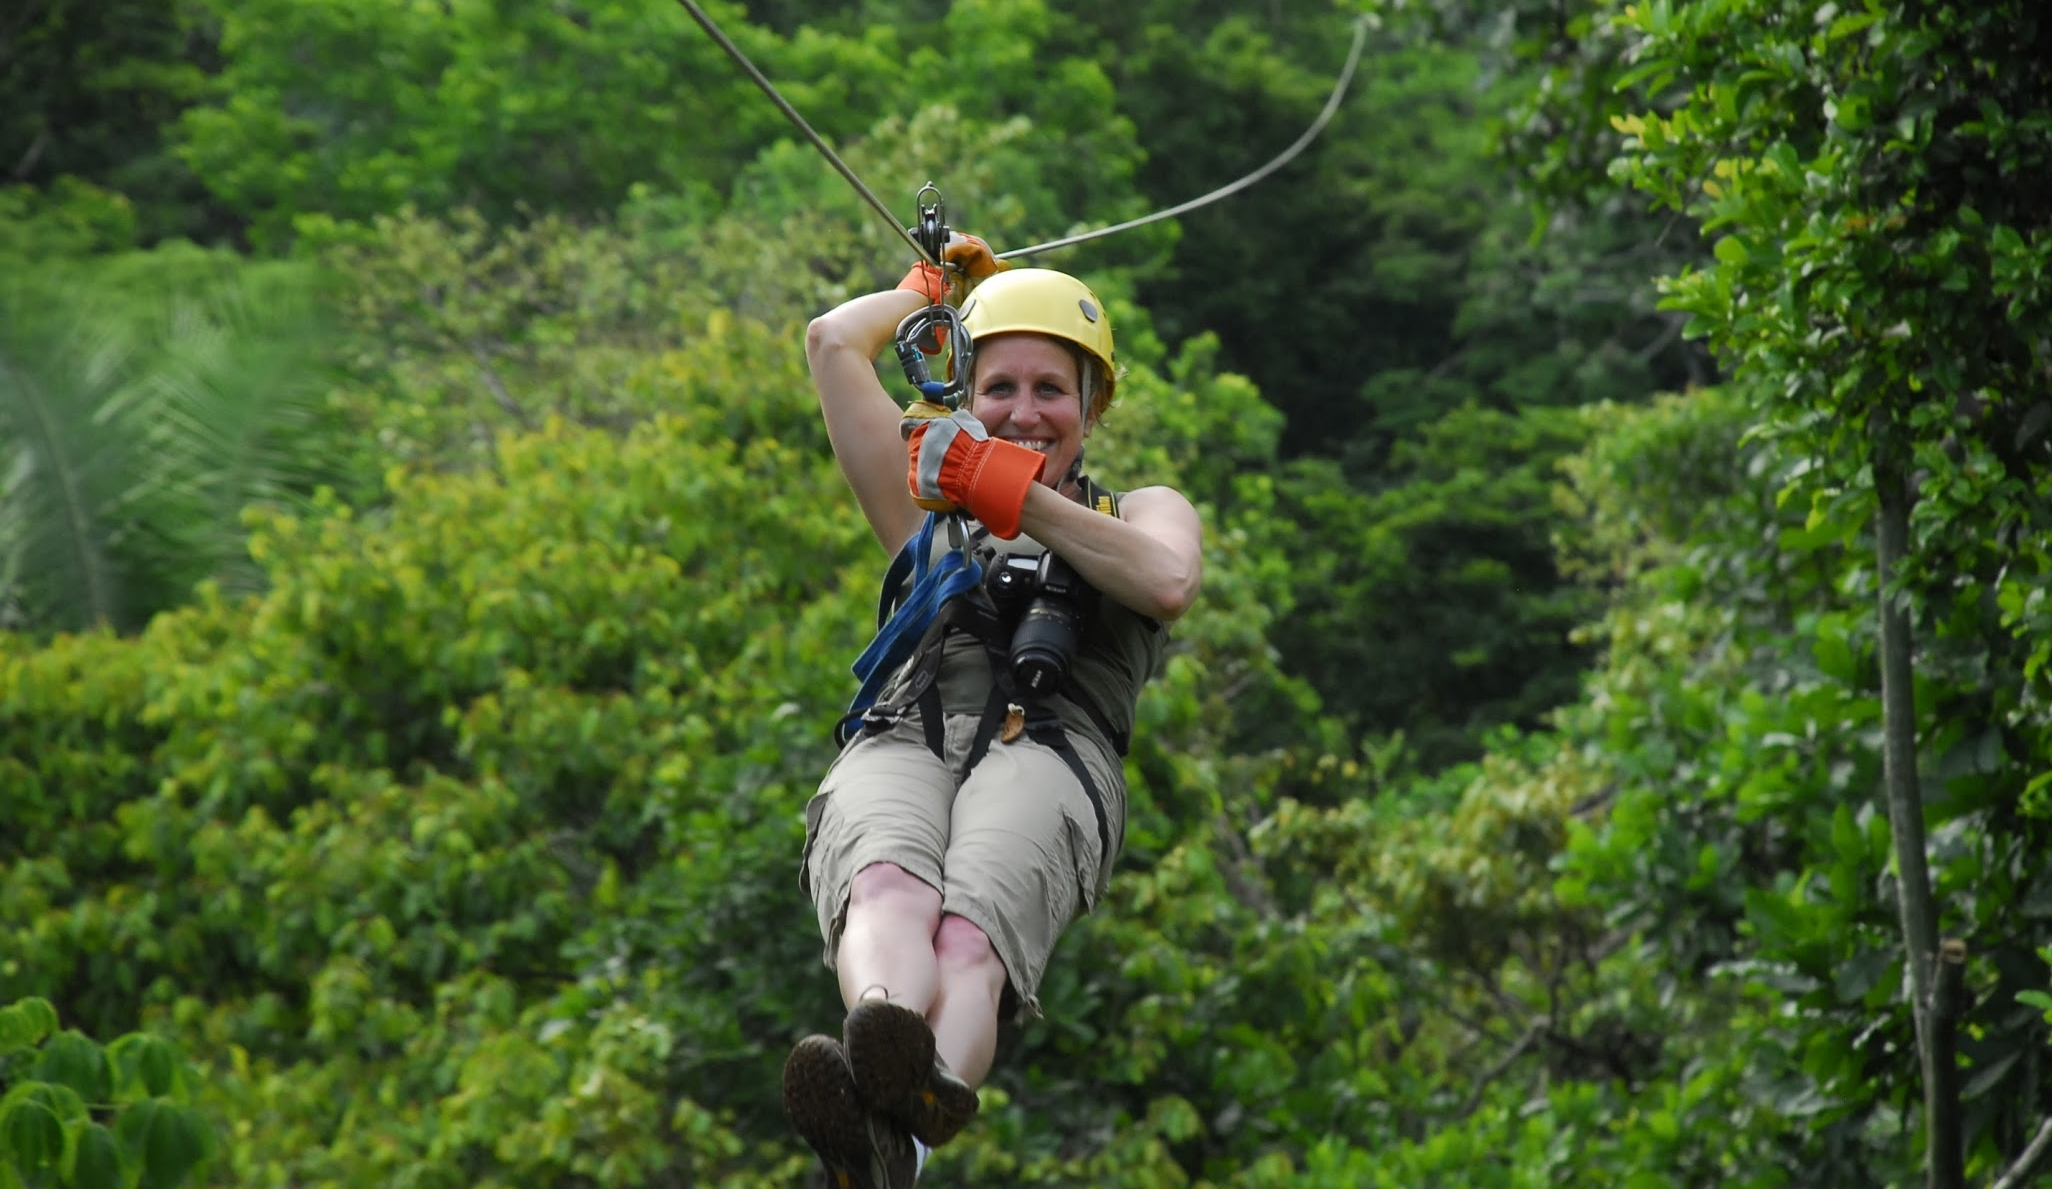 You want adventure? You got it! Join us on some of the most exhilarating ziplines in Costa Rica. This company follows our safety first mentality. Come with us for a birds eye view